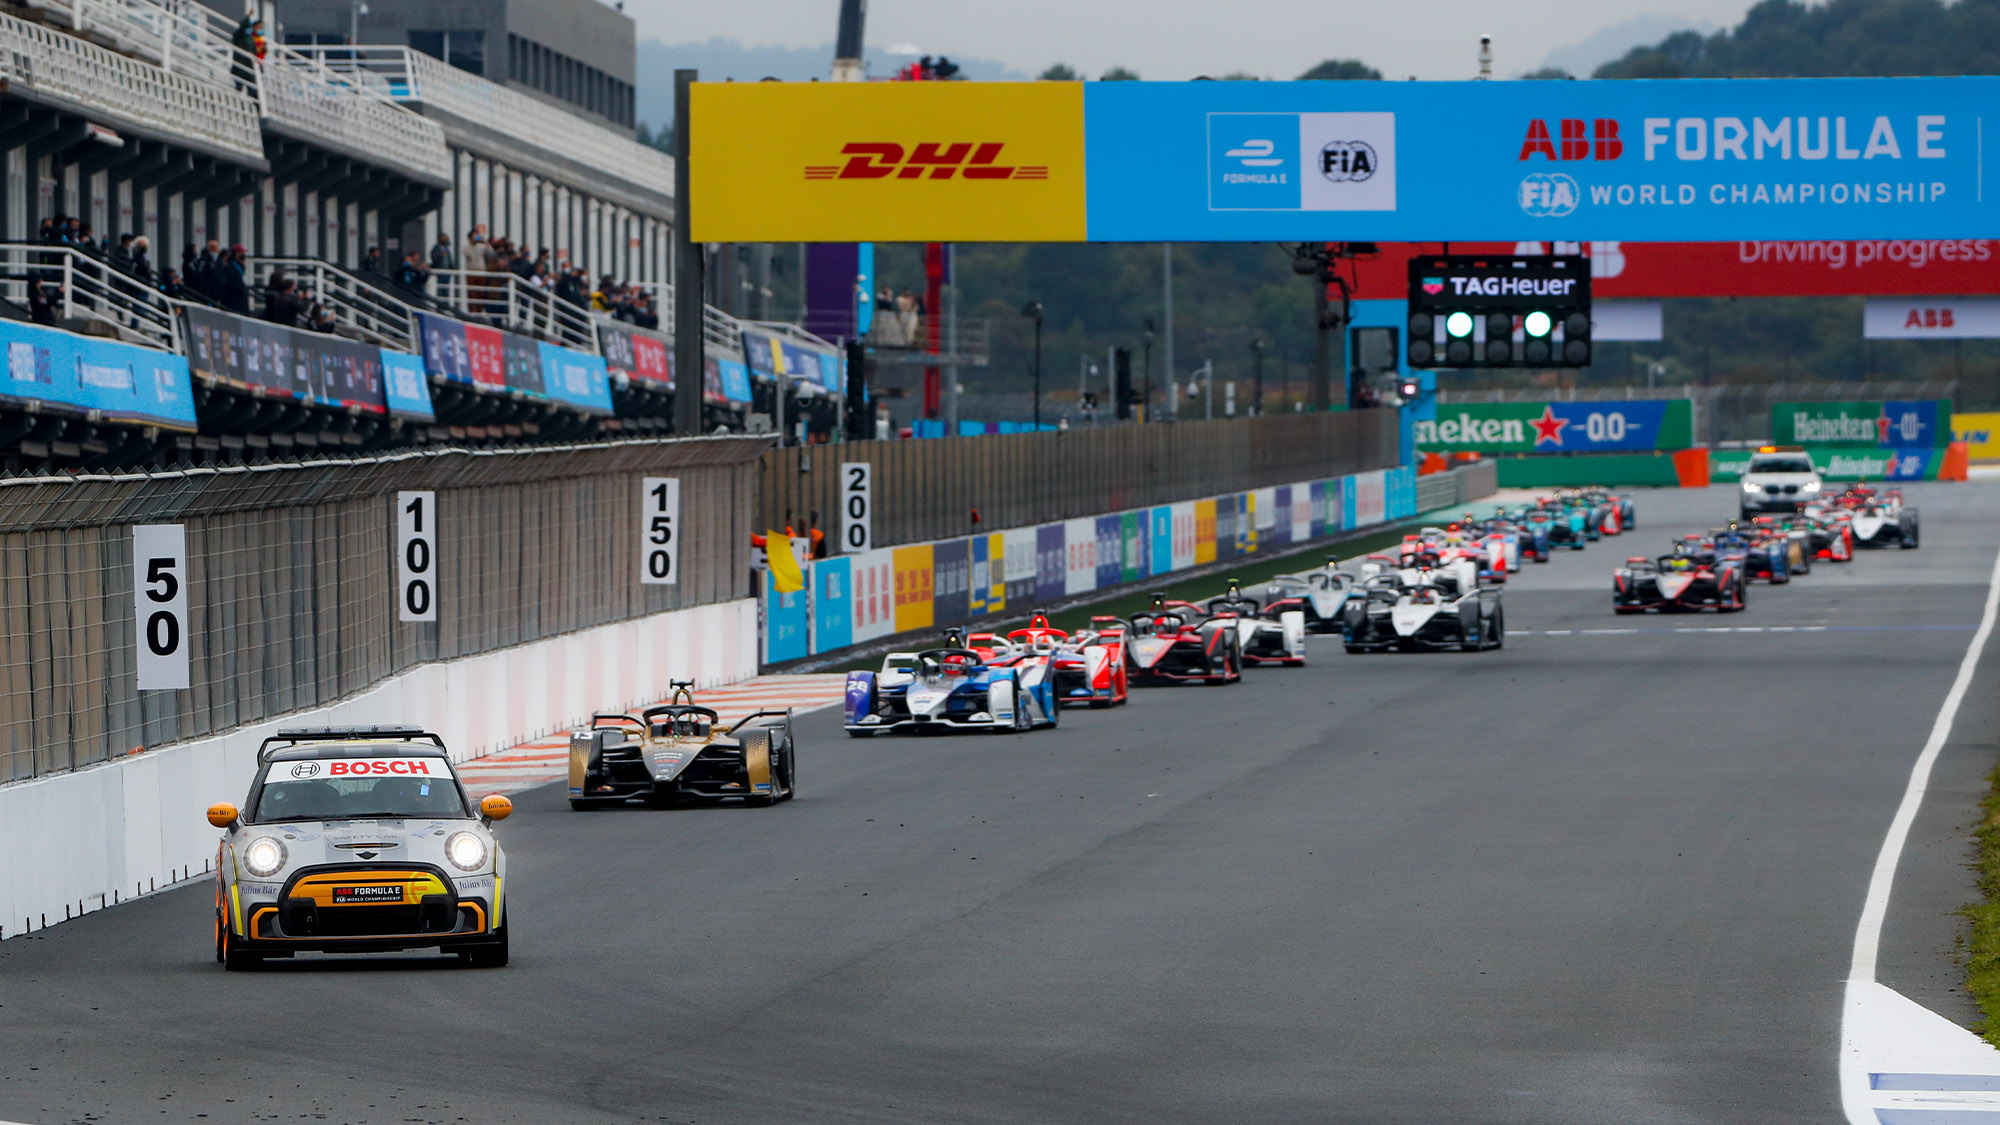 Safety car leads the pack at the 2021 Valencia ePrix